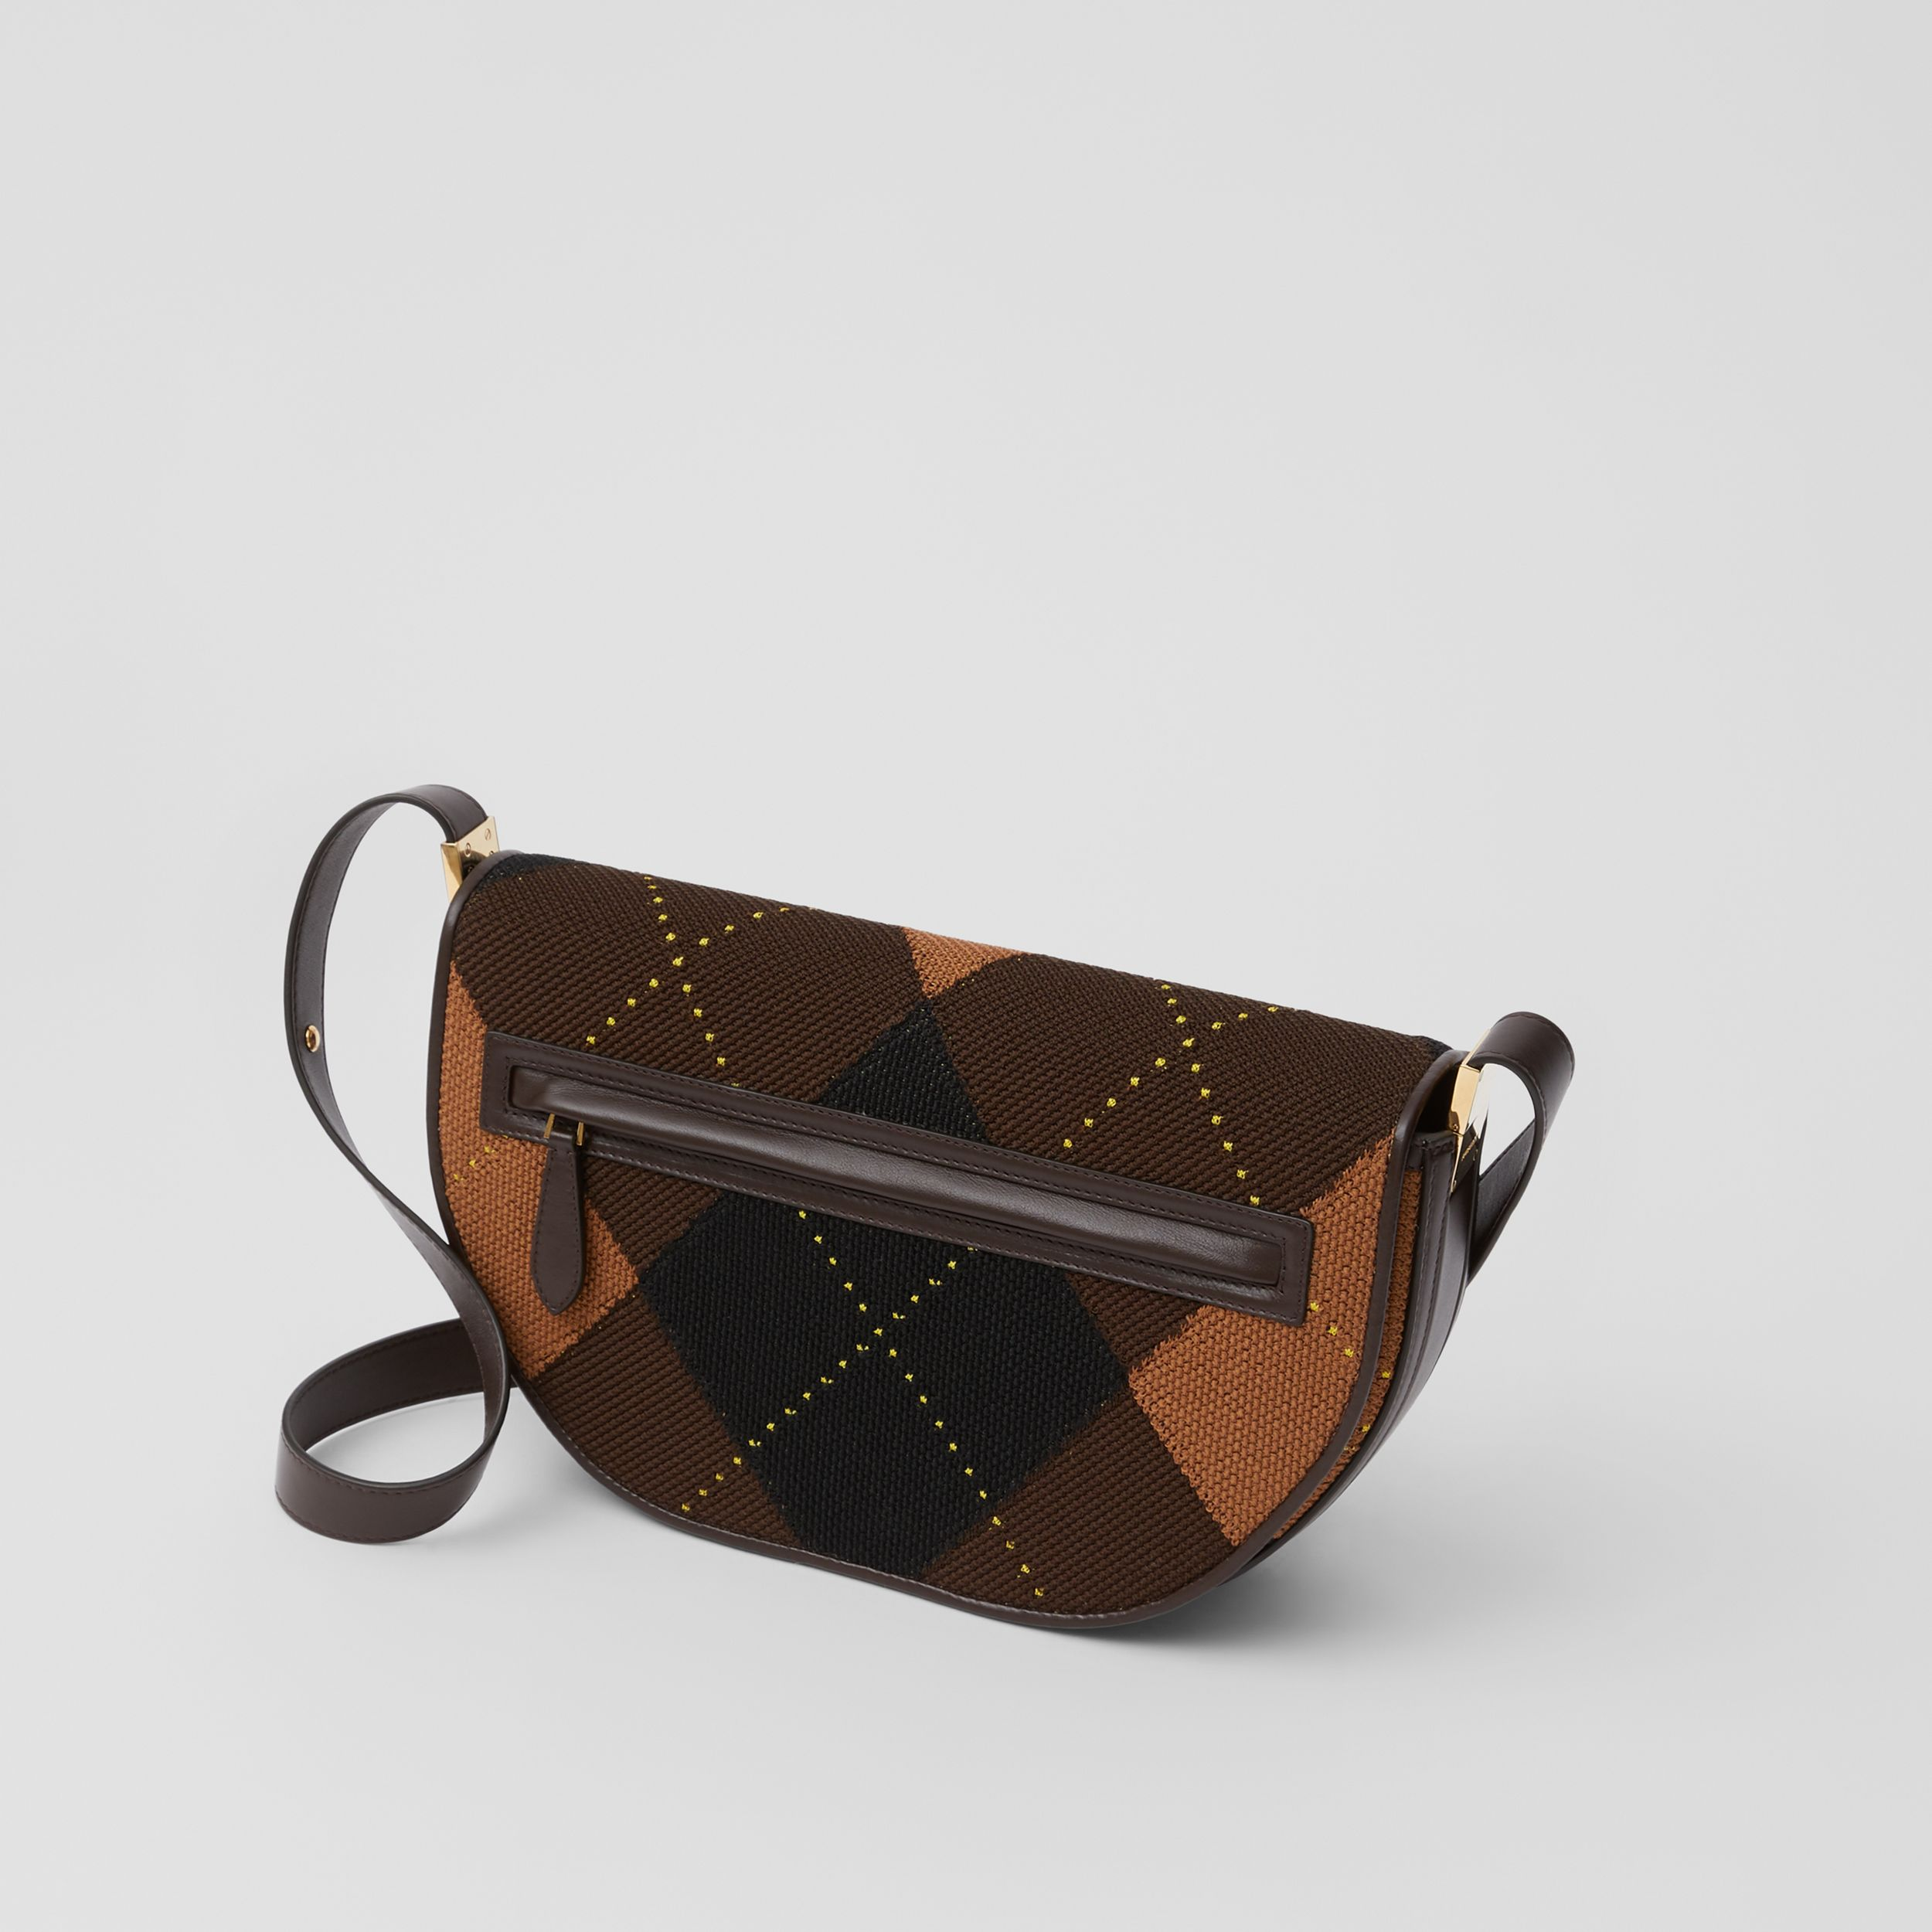 Medium Argyle Knit and Leather Olympia Bag in Dark Khaki - Women | Burberry United Kingdom - 3